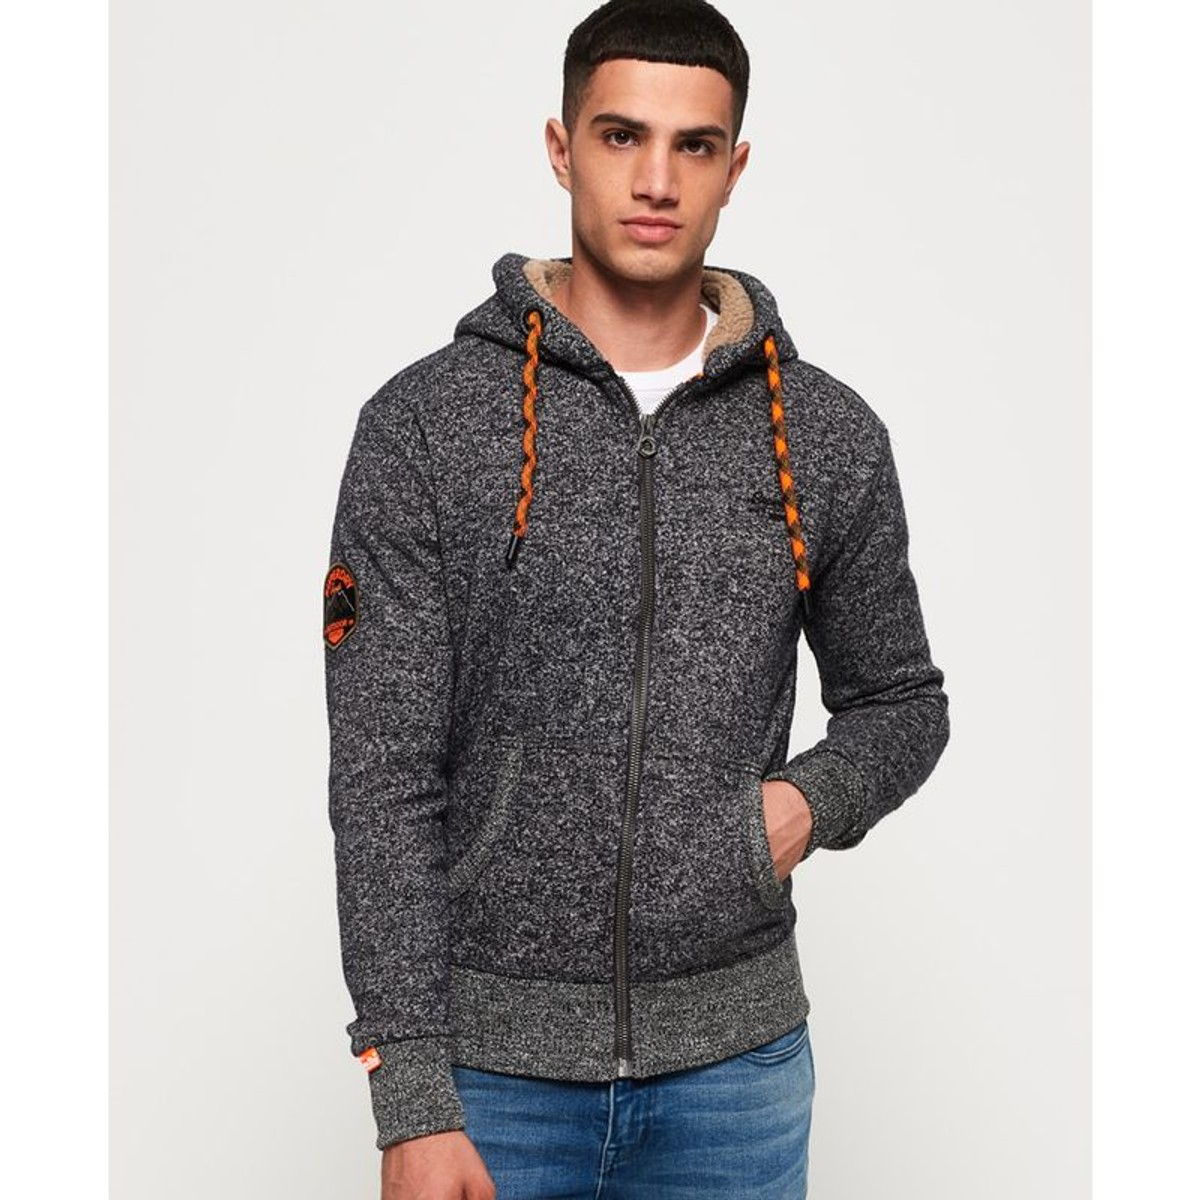 Gilet À Capuche Zippé Mountain Orange Label - Taille   S 2XL ... 7beb44cbcddb